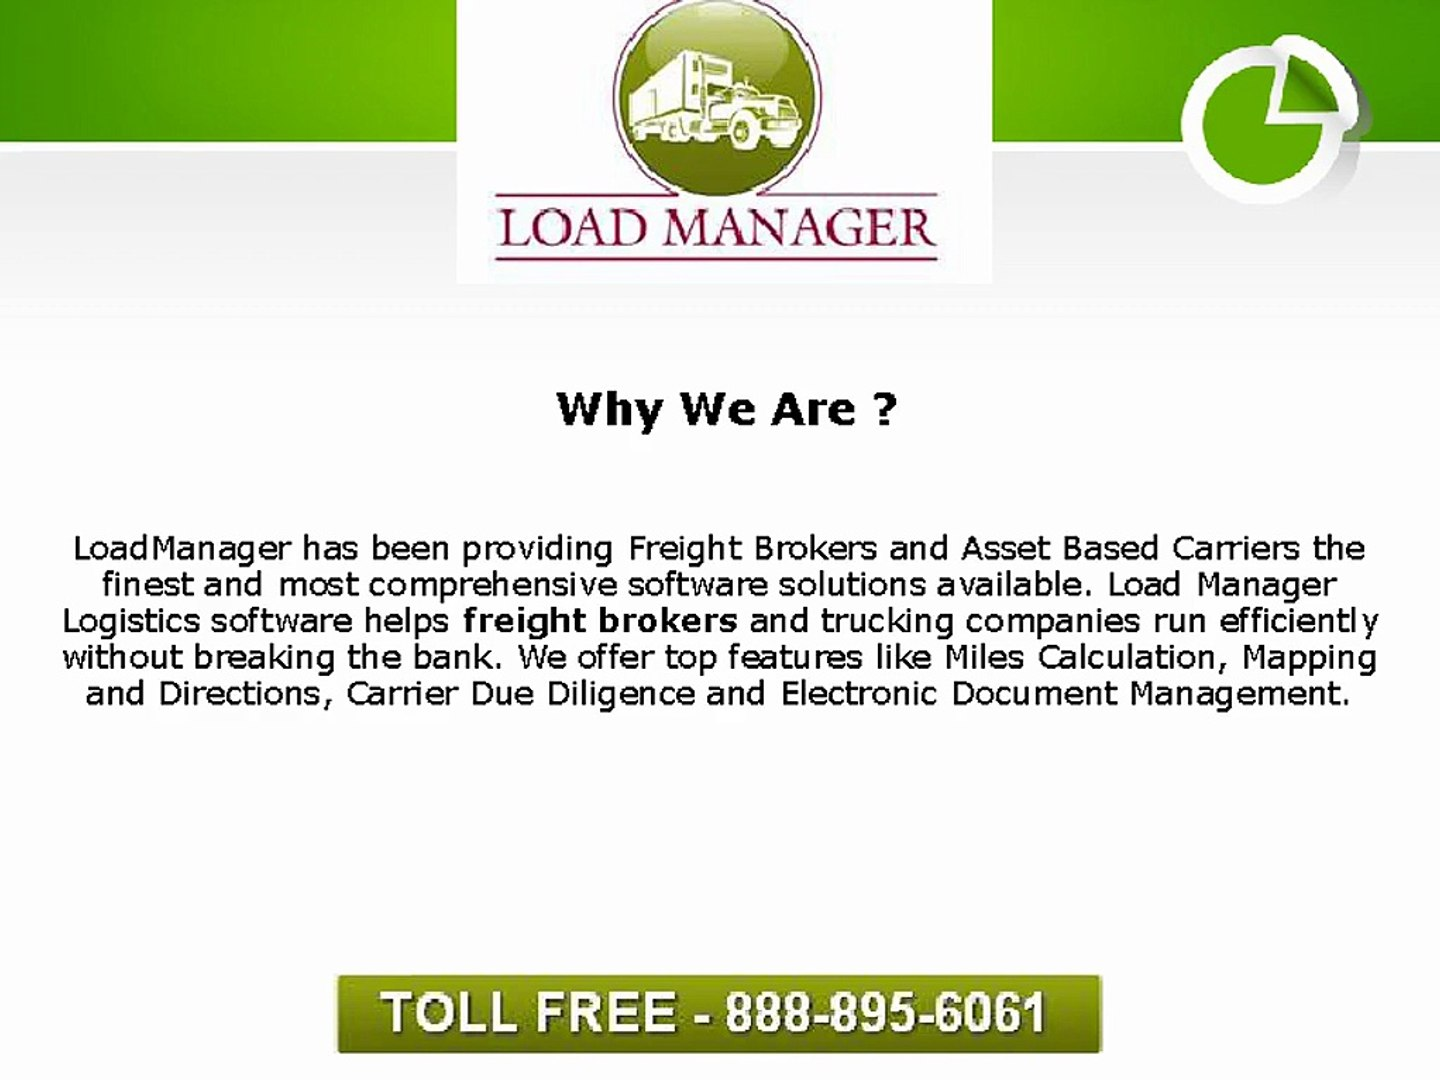 LoadManager's Freight Broker Software Starts at Only $39 a Month